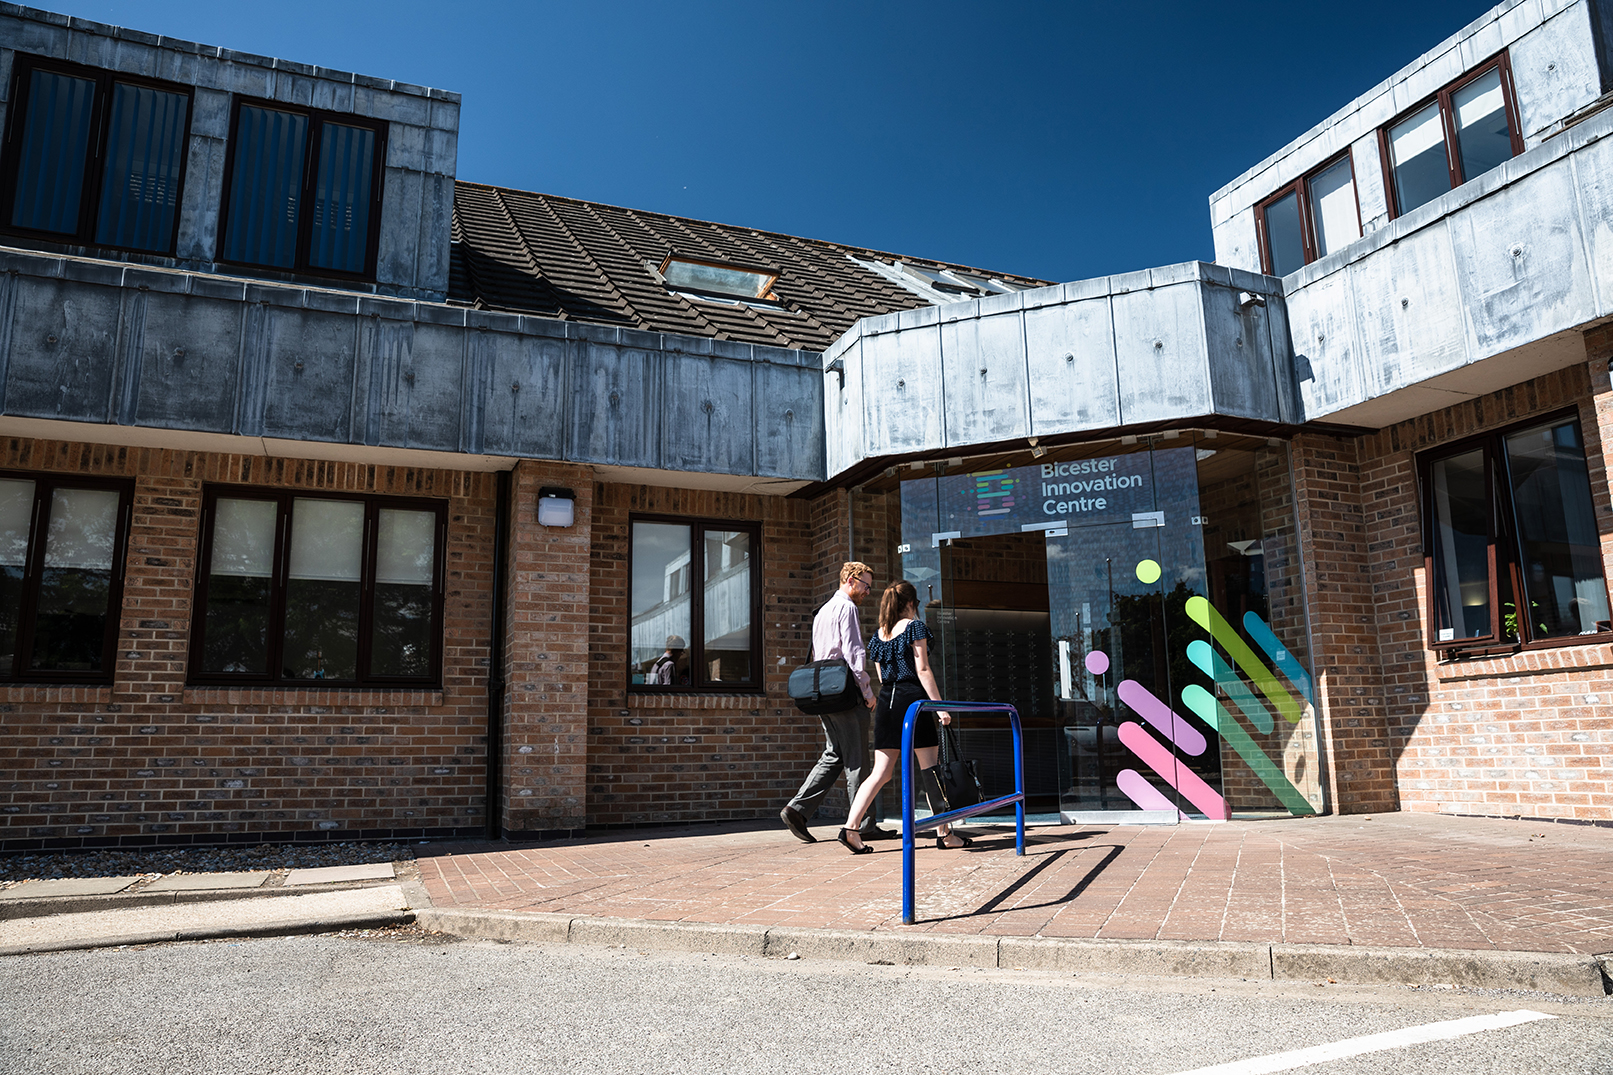 Oxford Innovation - Bicester Innovation Centre - Telford Road - Bicester - OX26